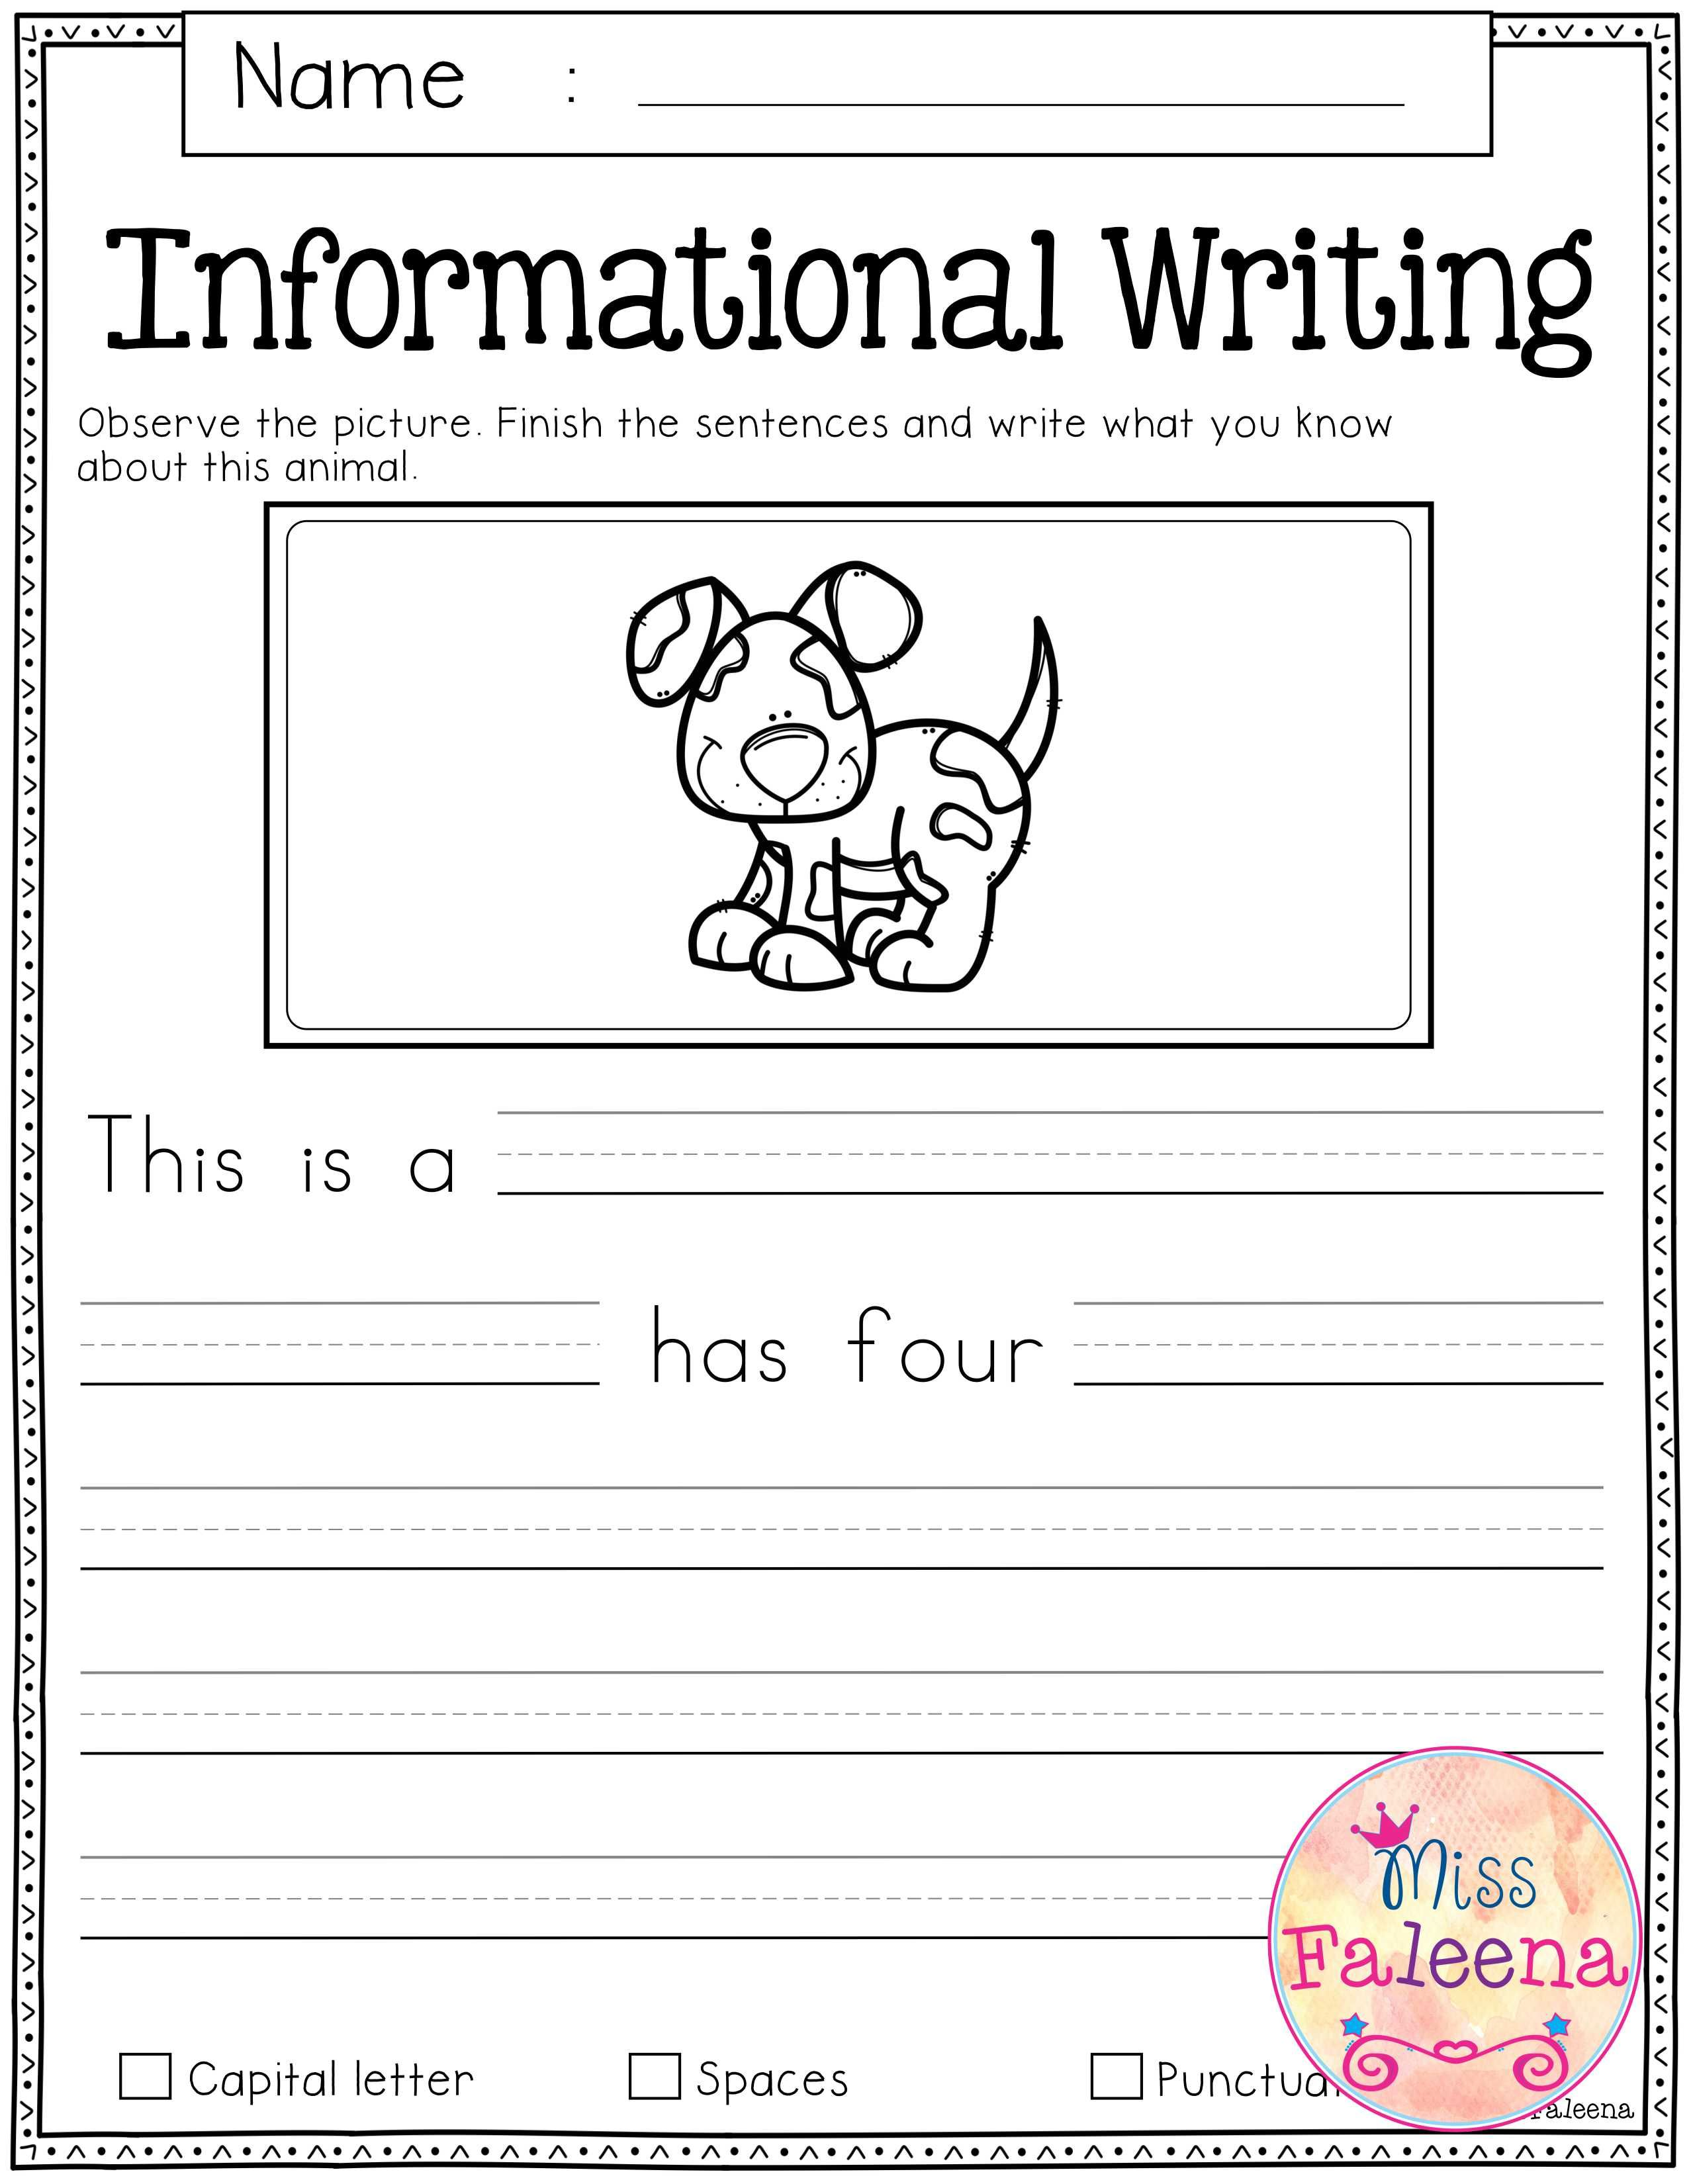 Free Writing Prompts | First Grade | Kindergarten writing prompts ...